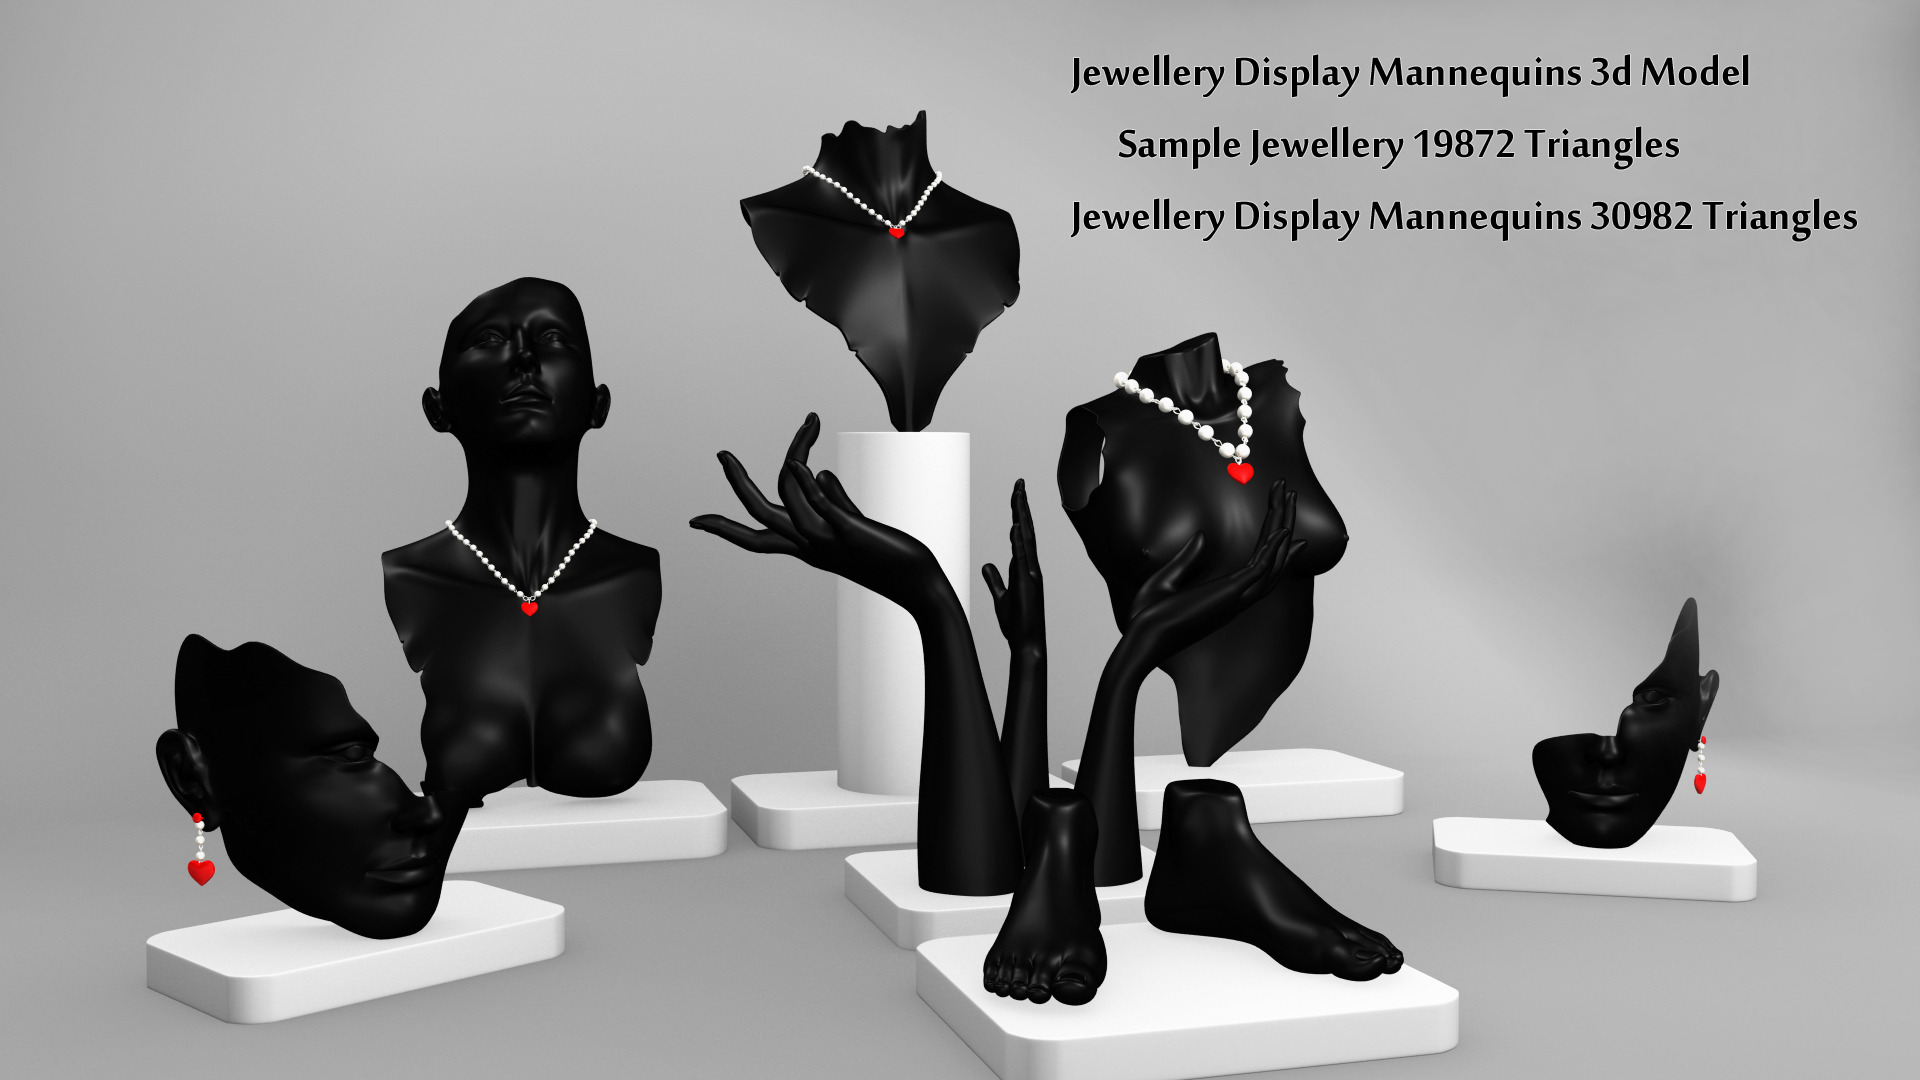 Jewellery Display Mannequins 3d Model By Bhuship 3docean